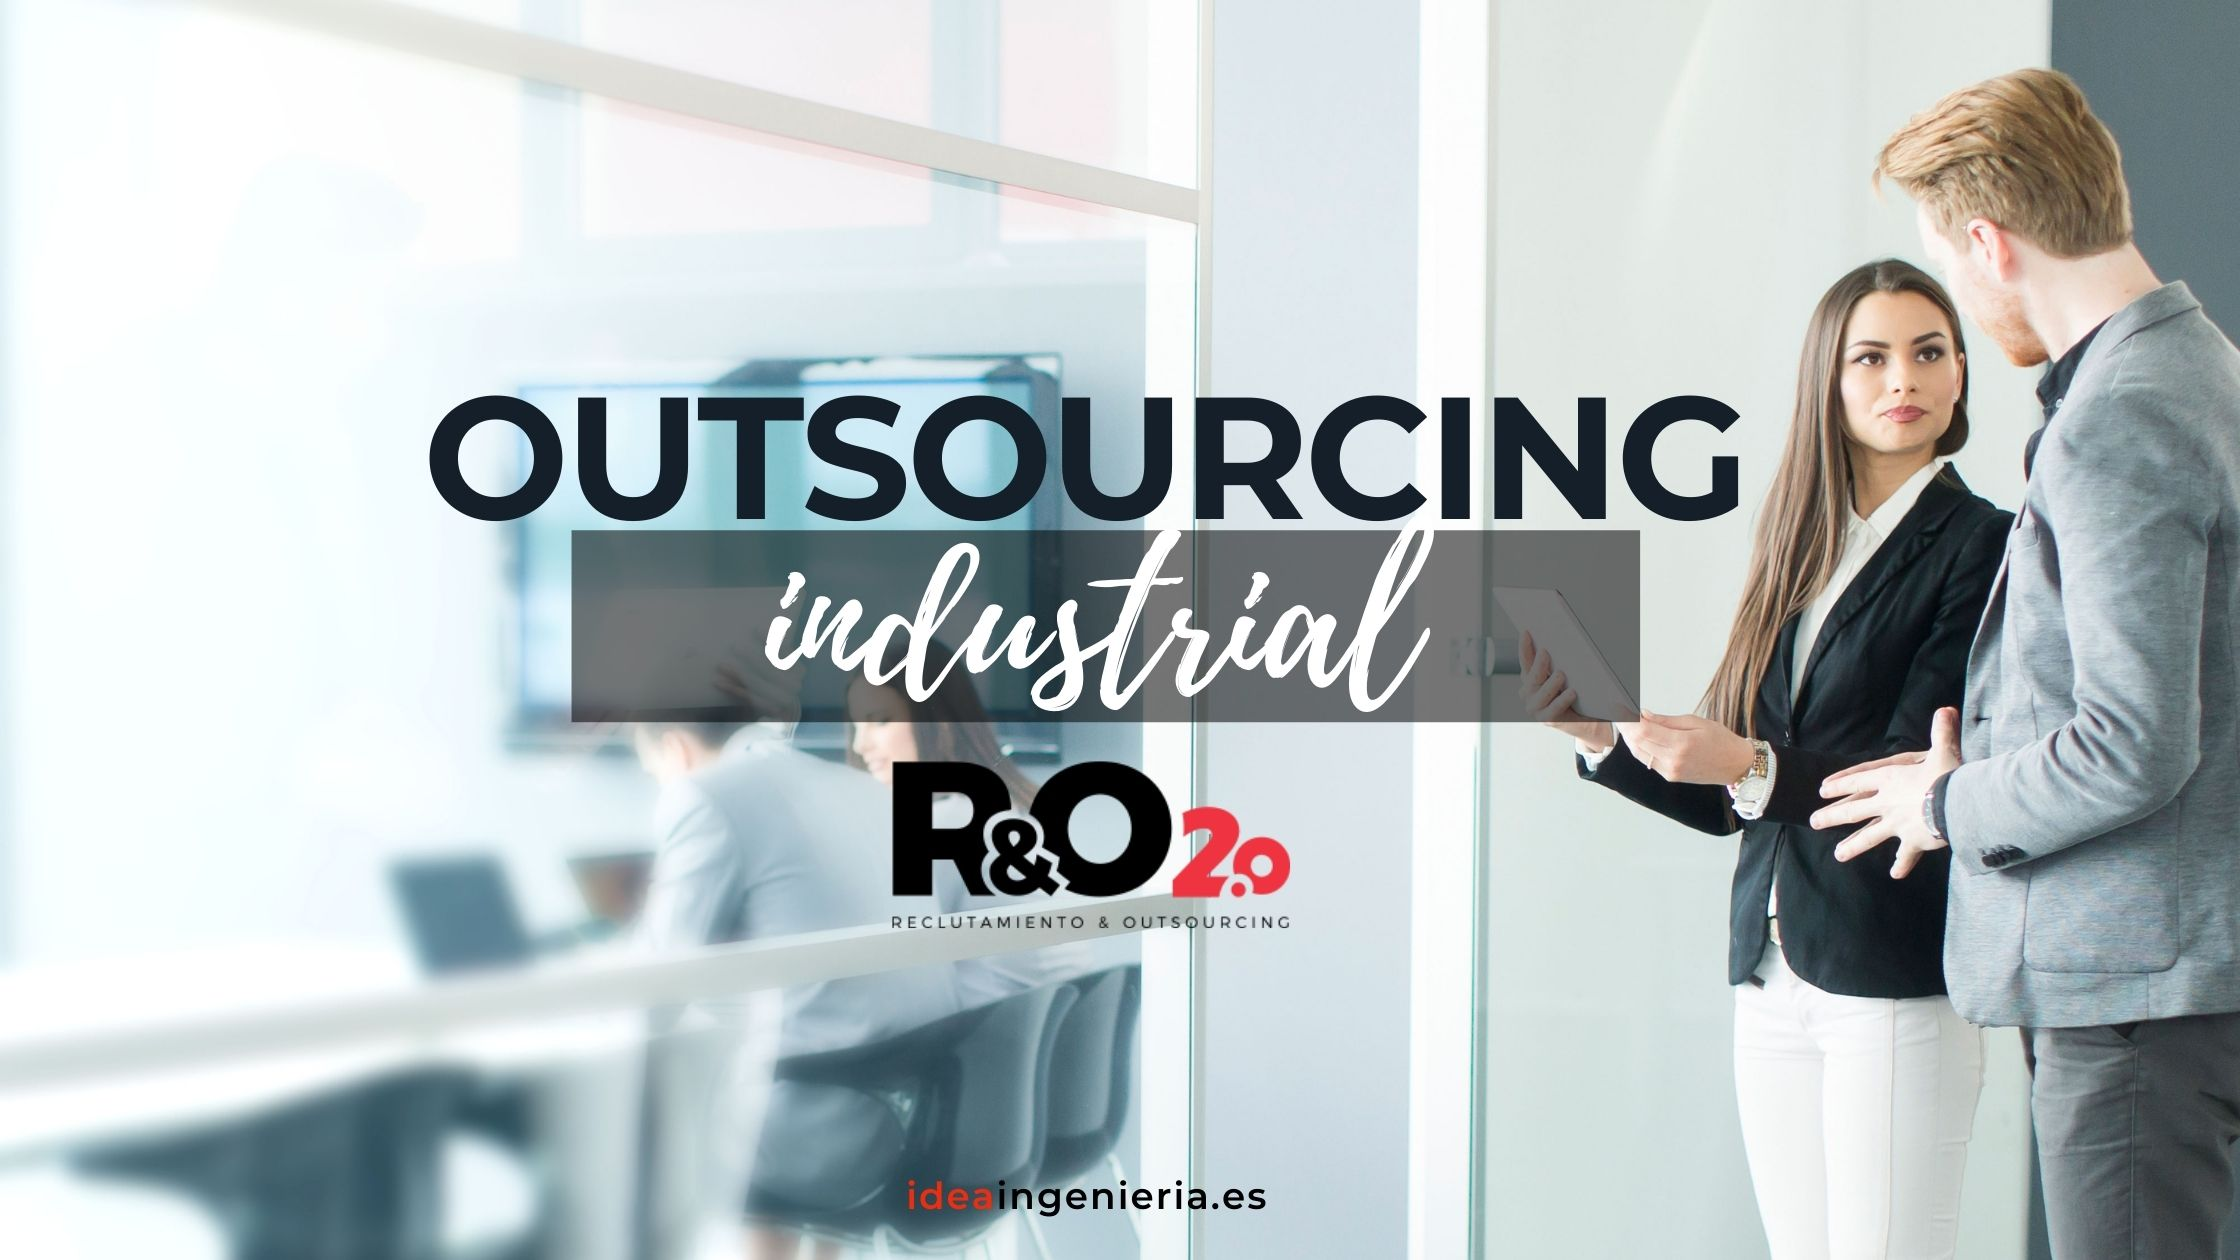 servicios de outsourcing industrial